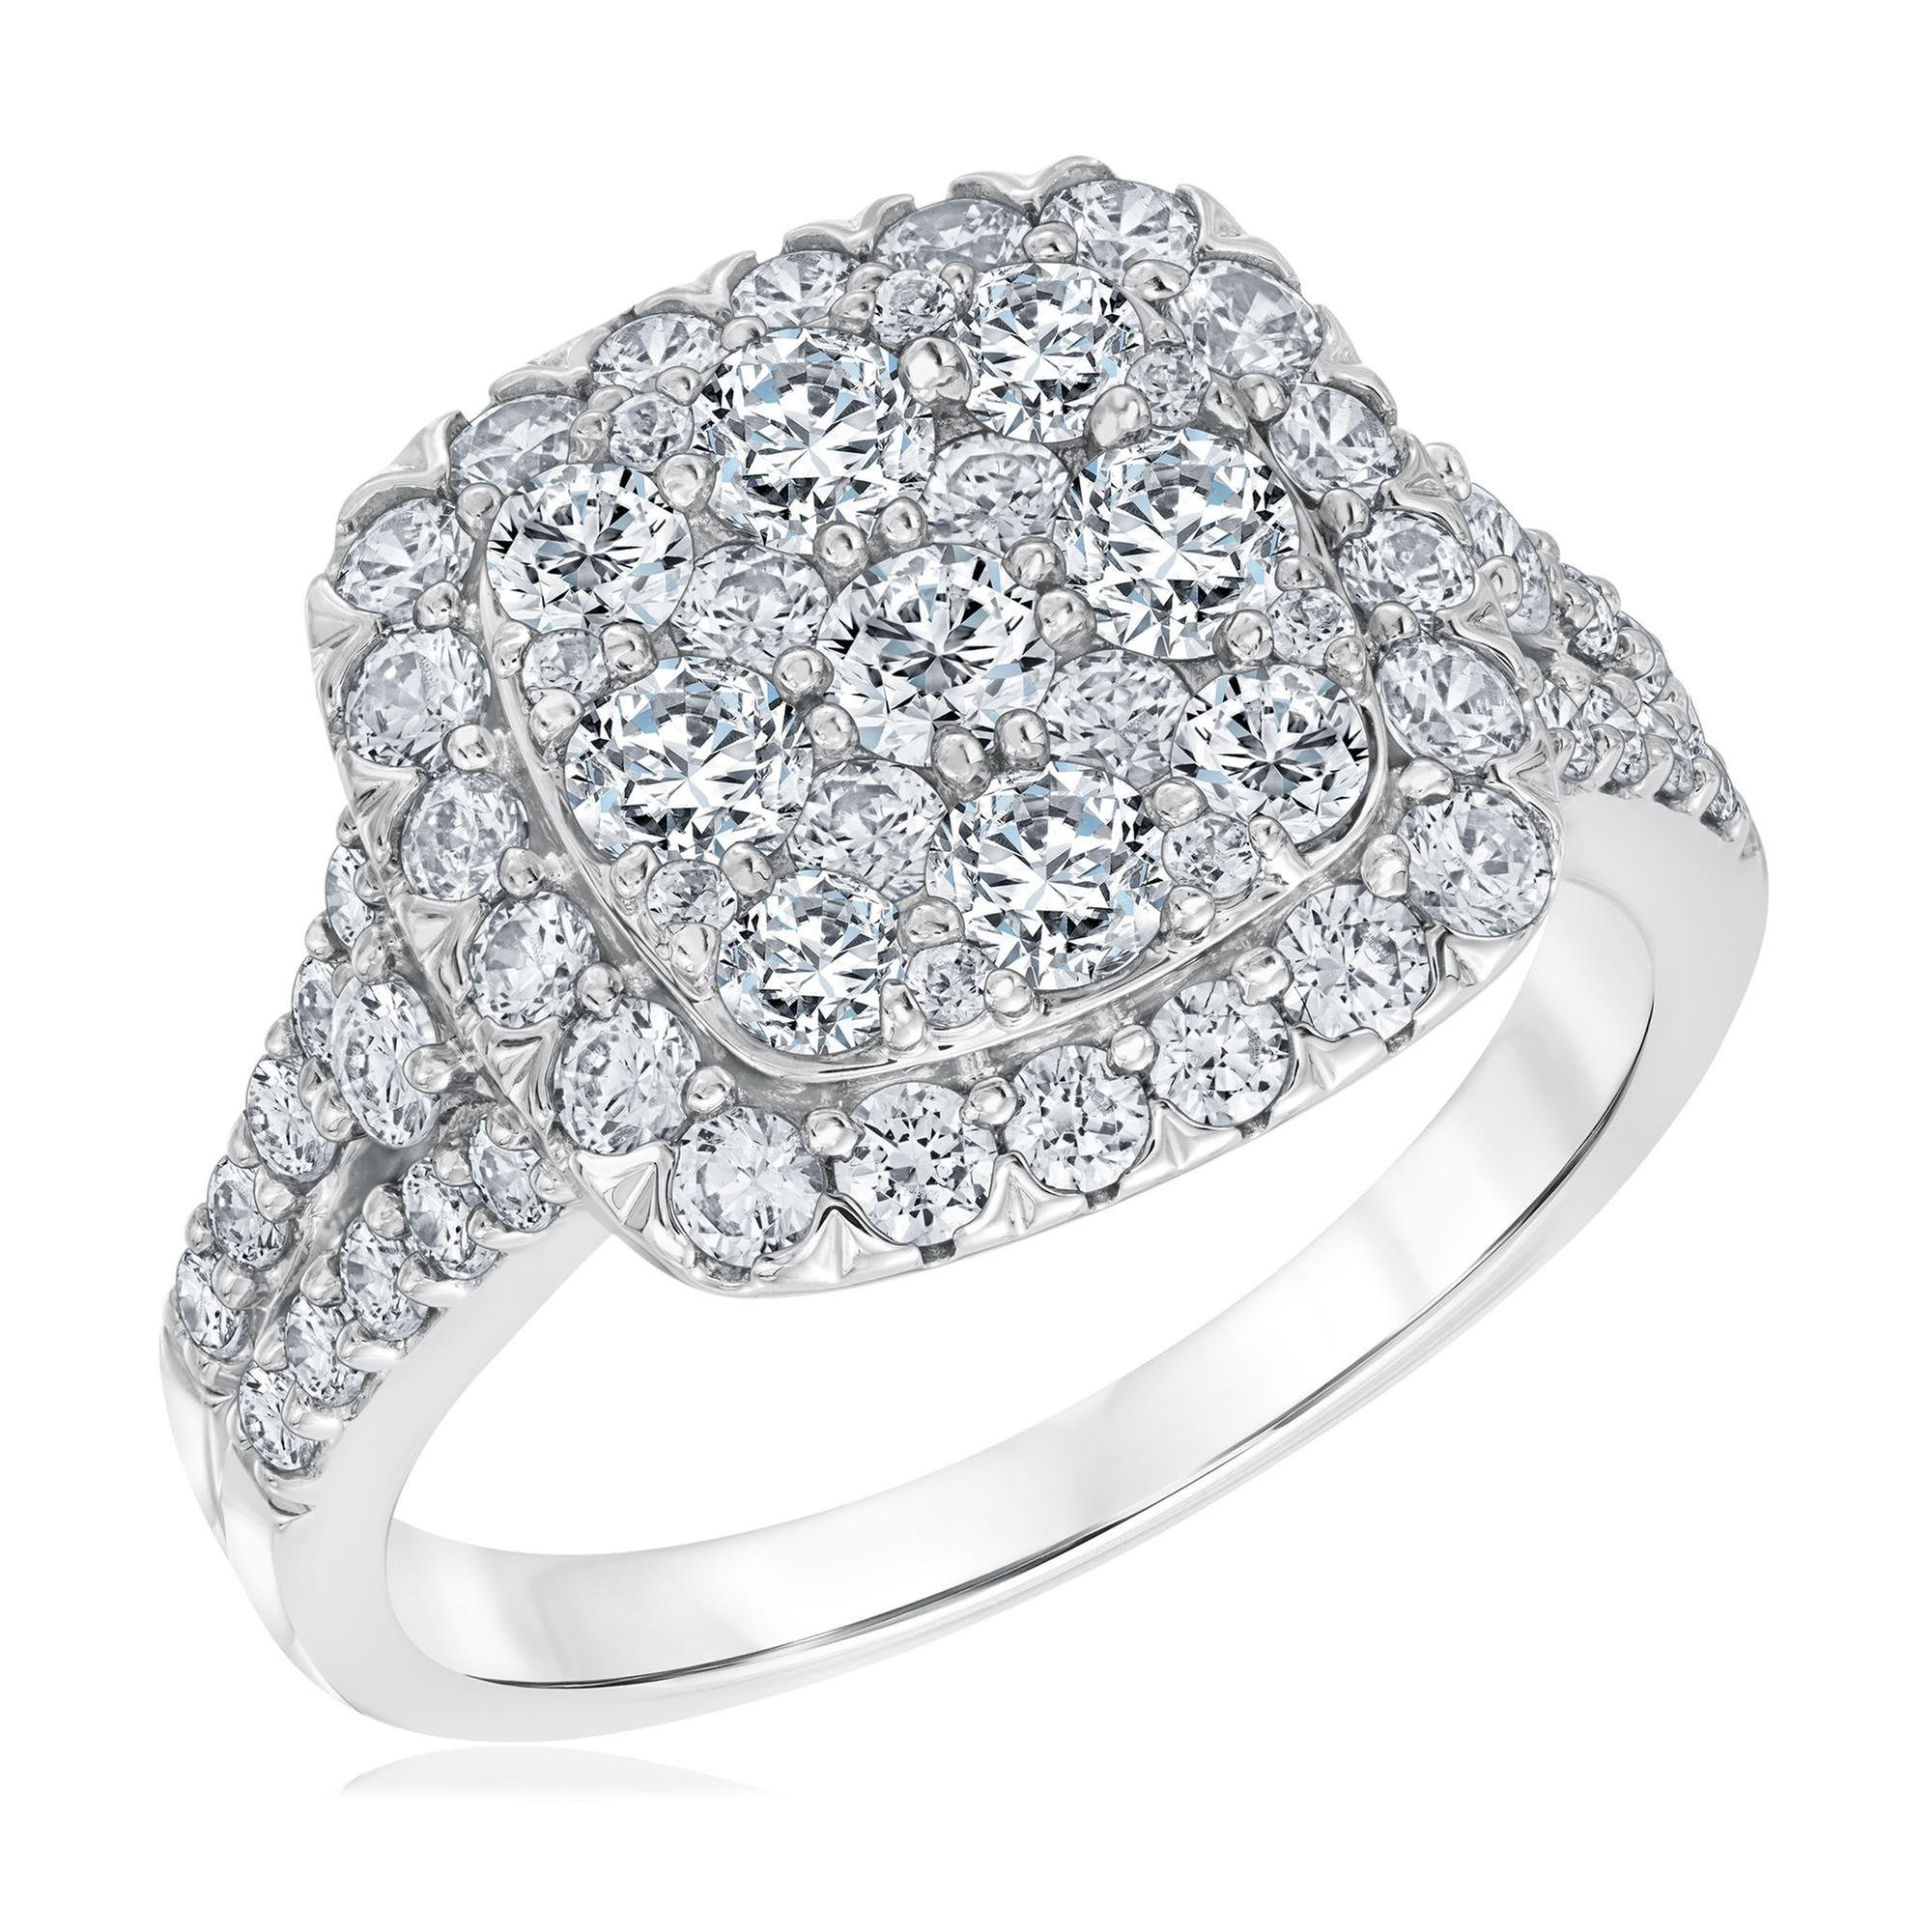 Round Diamond Cluster Top Engagement Ring 2ctw - Size 6.5